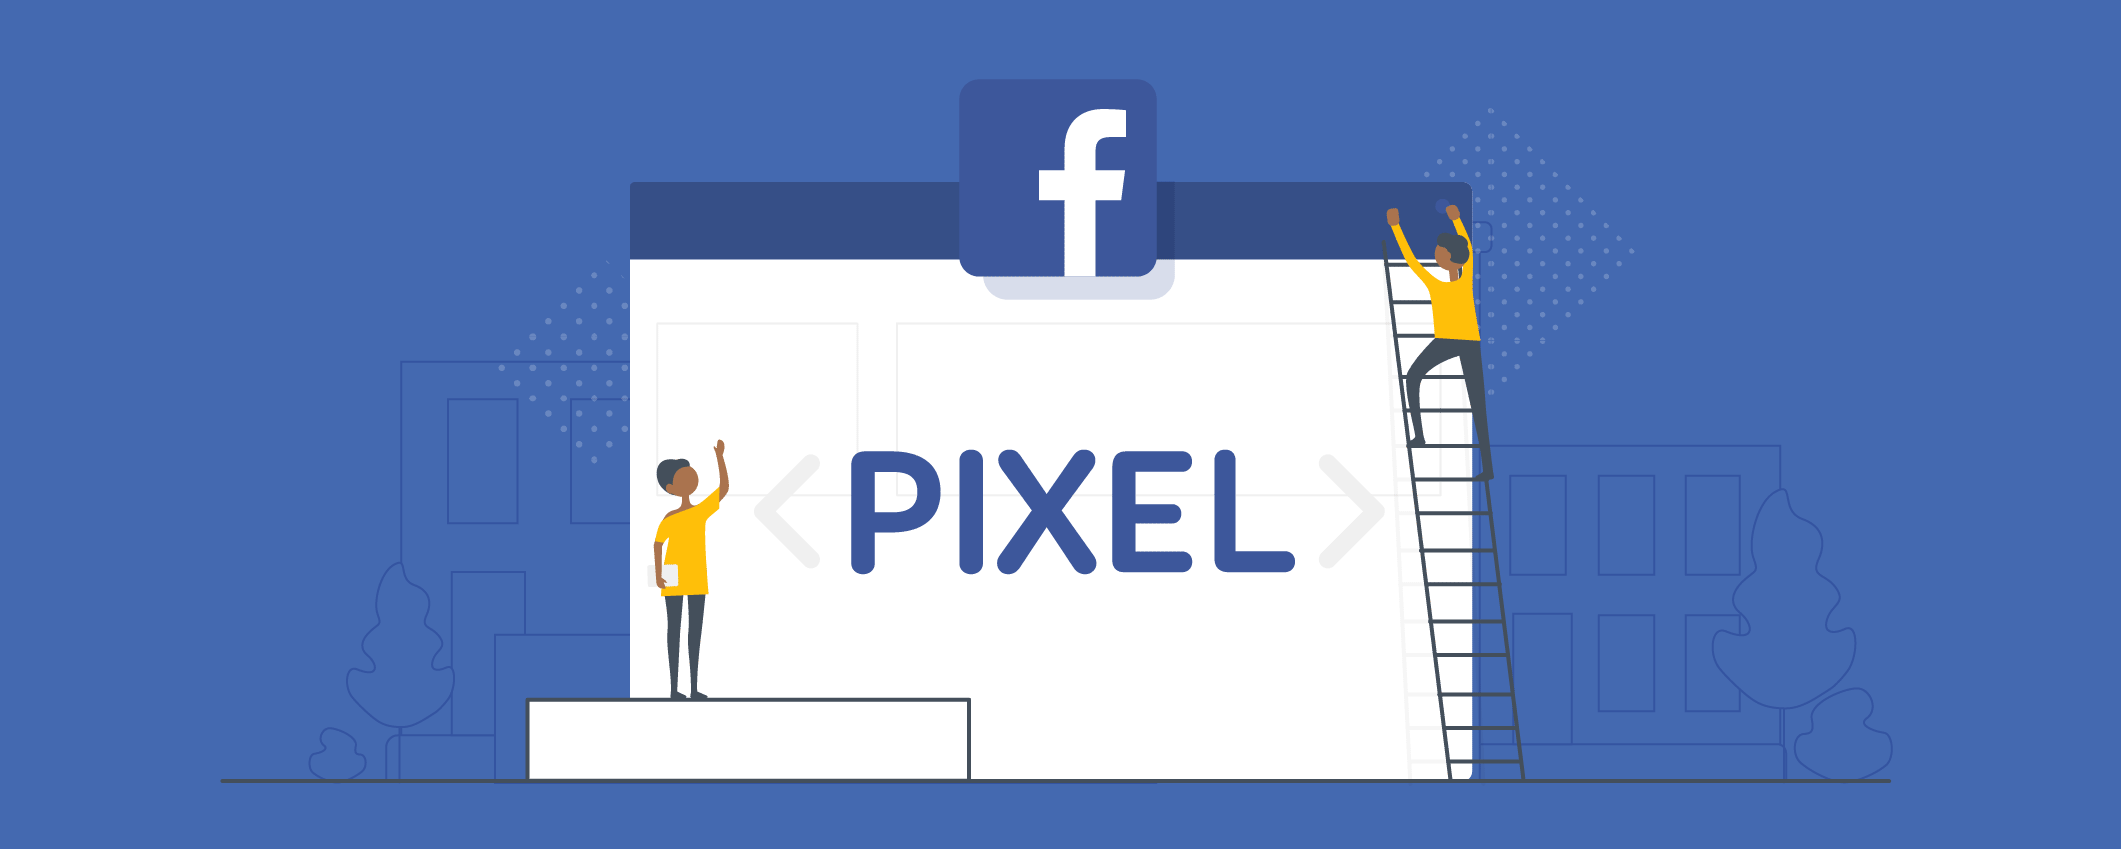 Facebook Pixel Strategies to Run More Targeted Ads